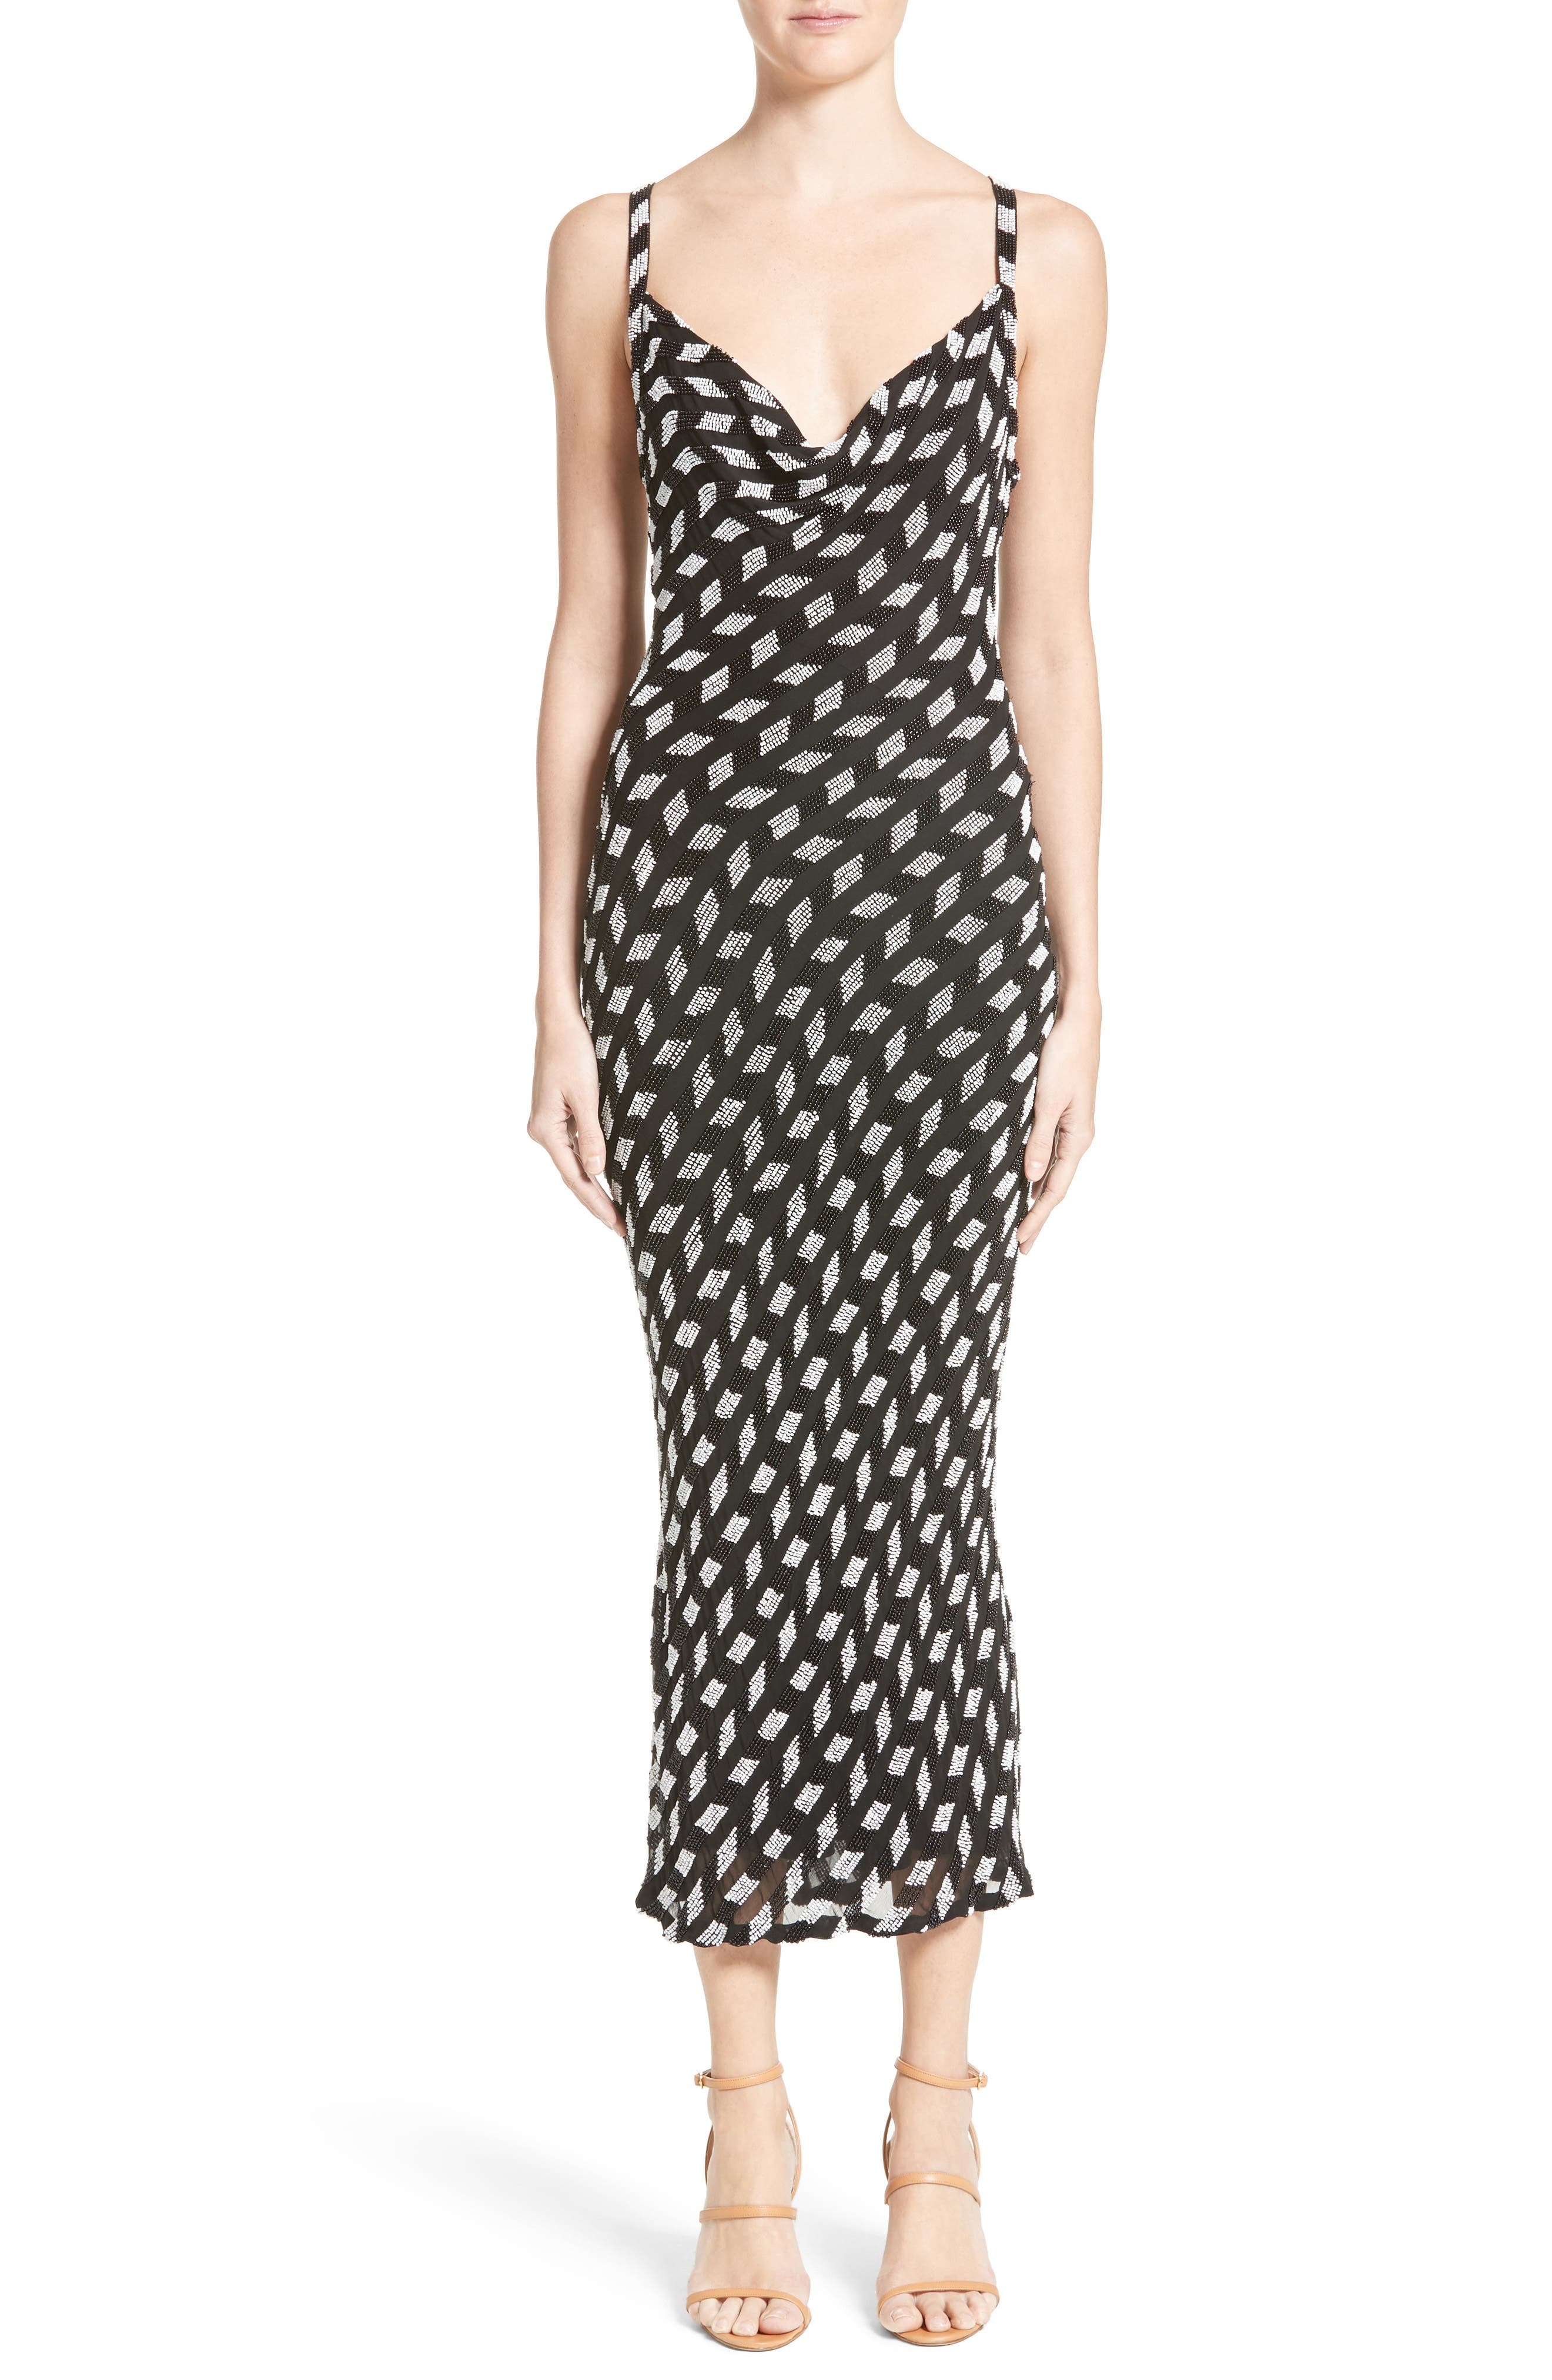 Cushnie et Ochs Penelope Beaded Chiffon Dress